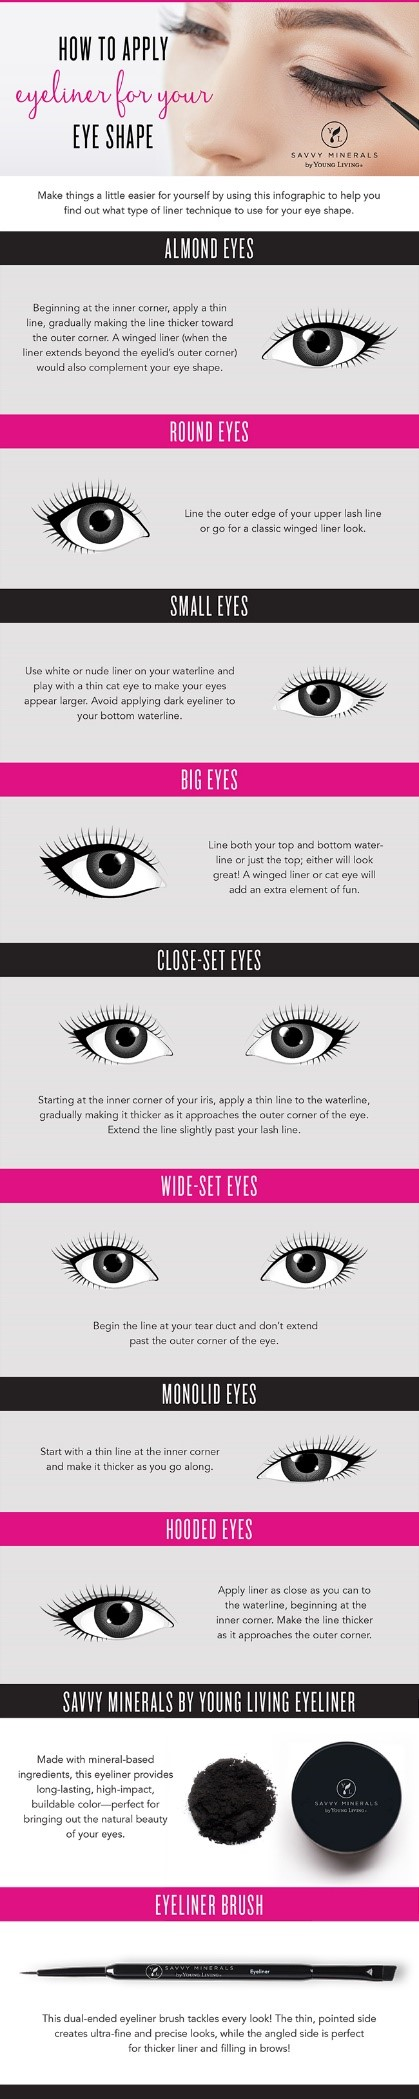 how to apply eyeliner for your eye infographic - young living essential oil